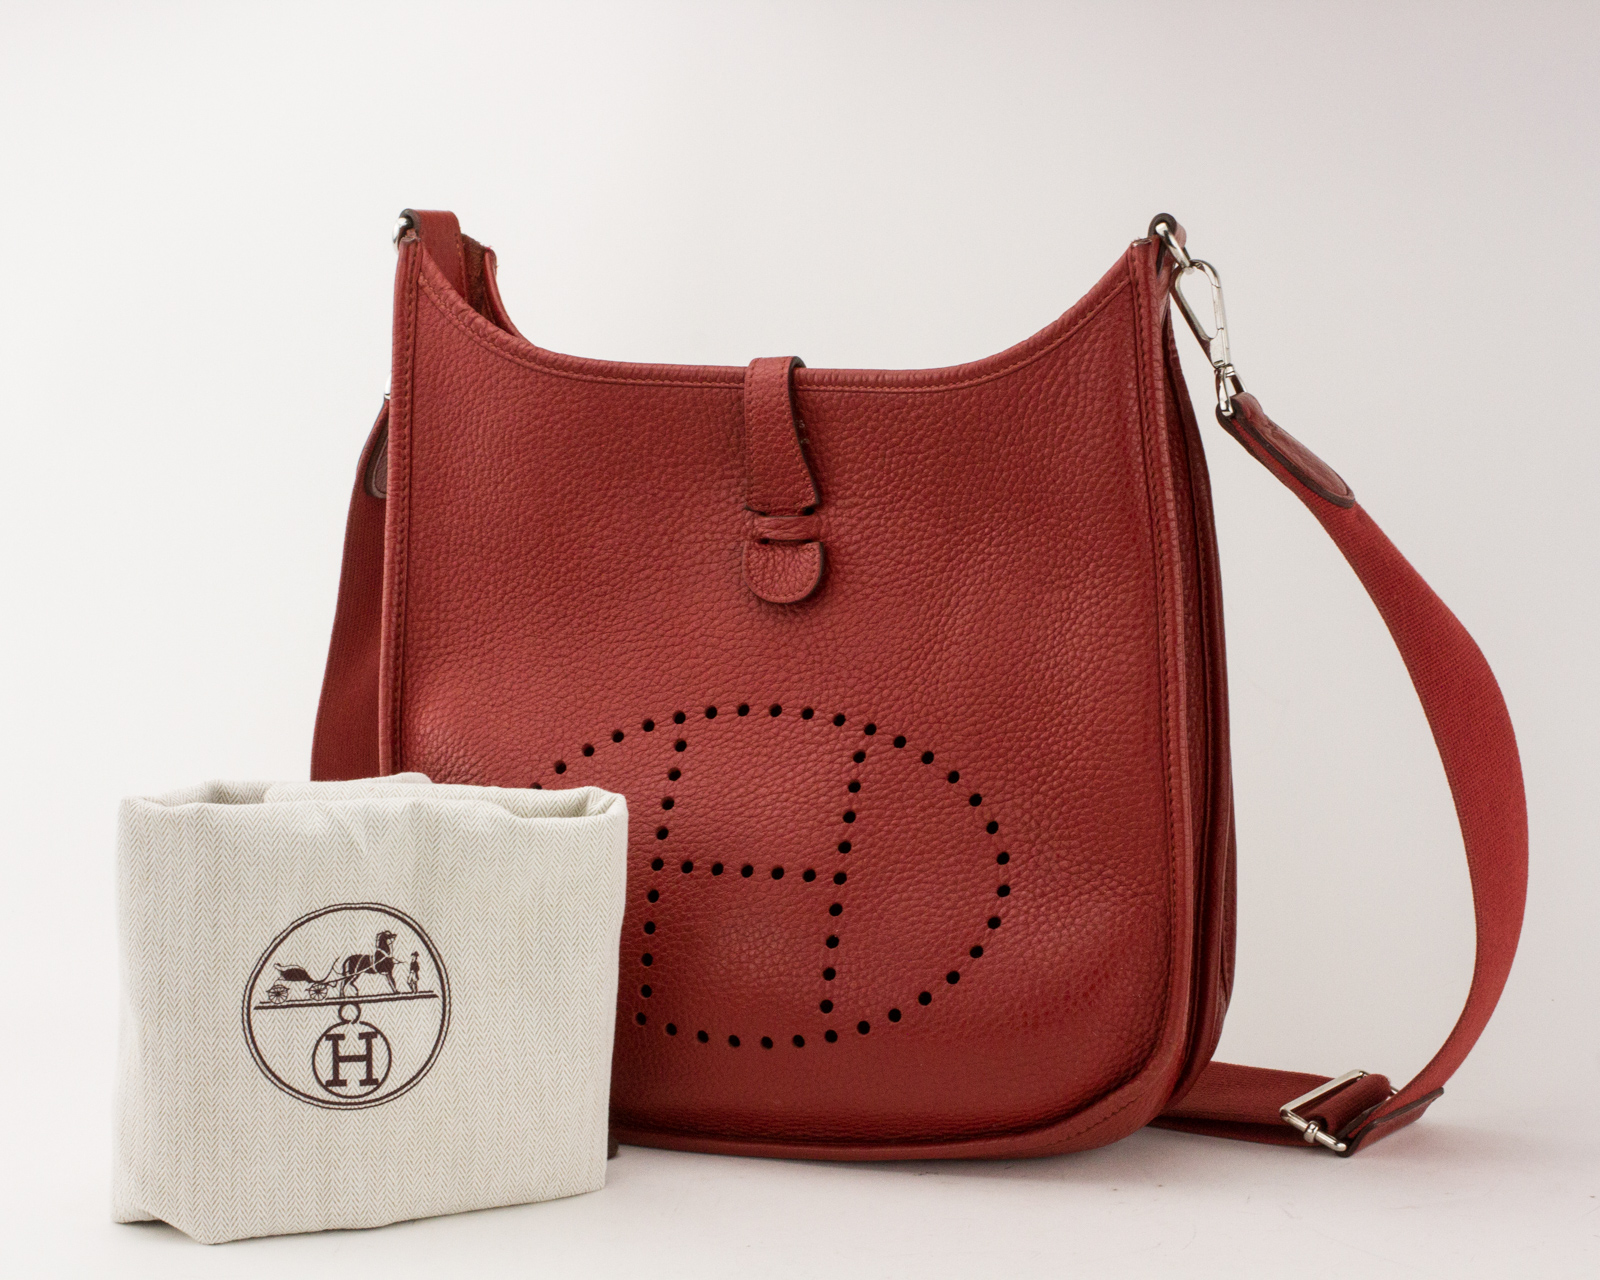 71edc2f94 Details about HERMES Taurillon Clemence Evelyne III GM Rouge Casaque  Crossbody Bag